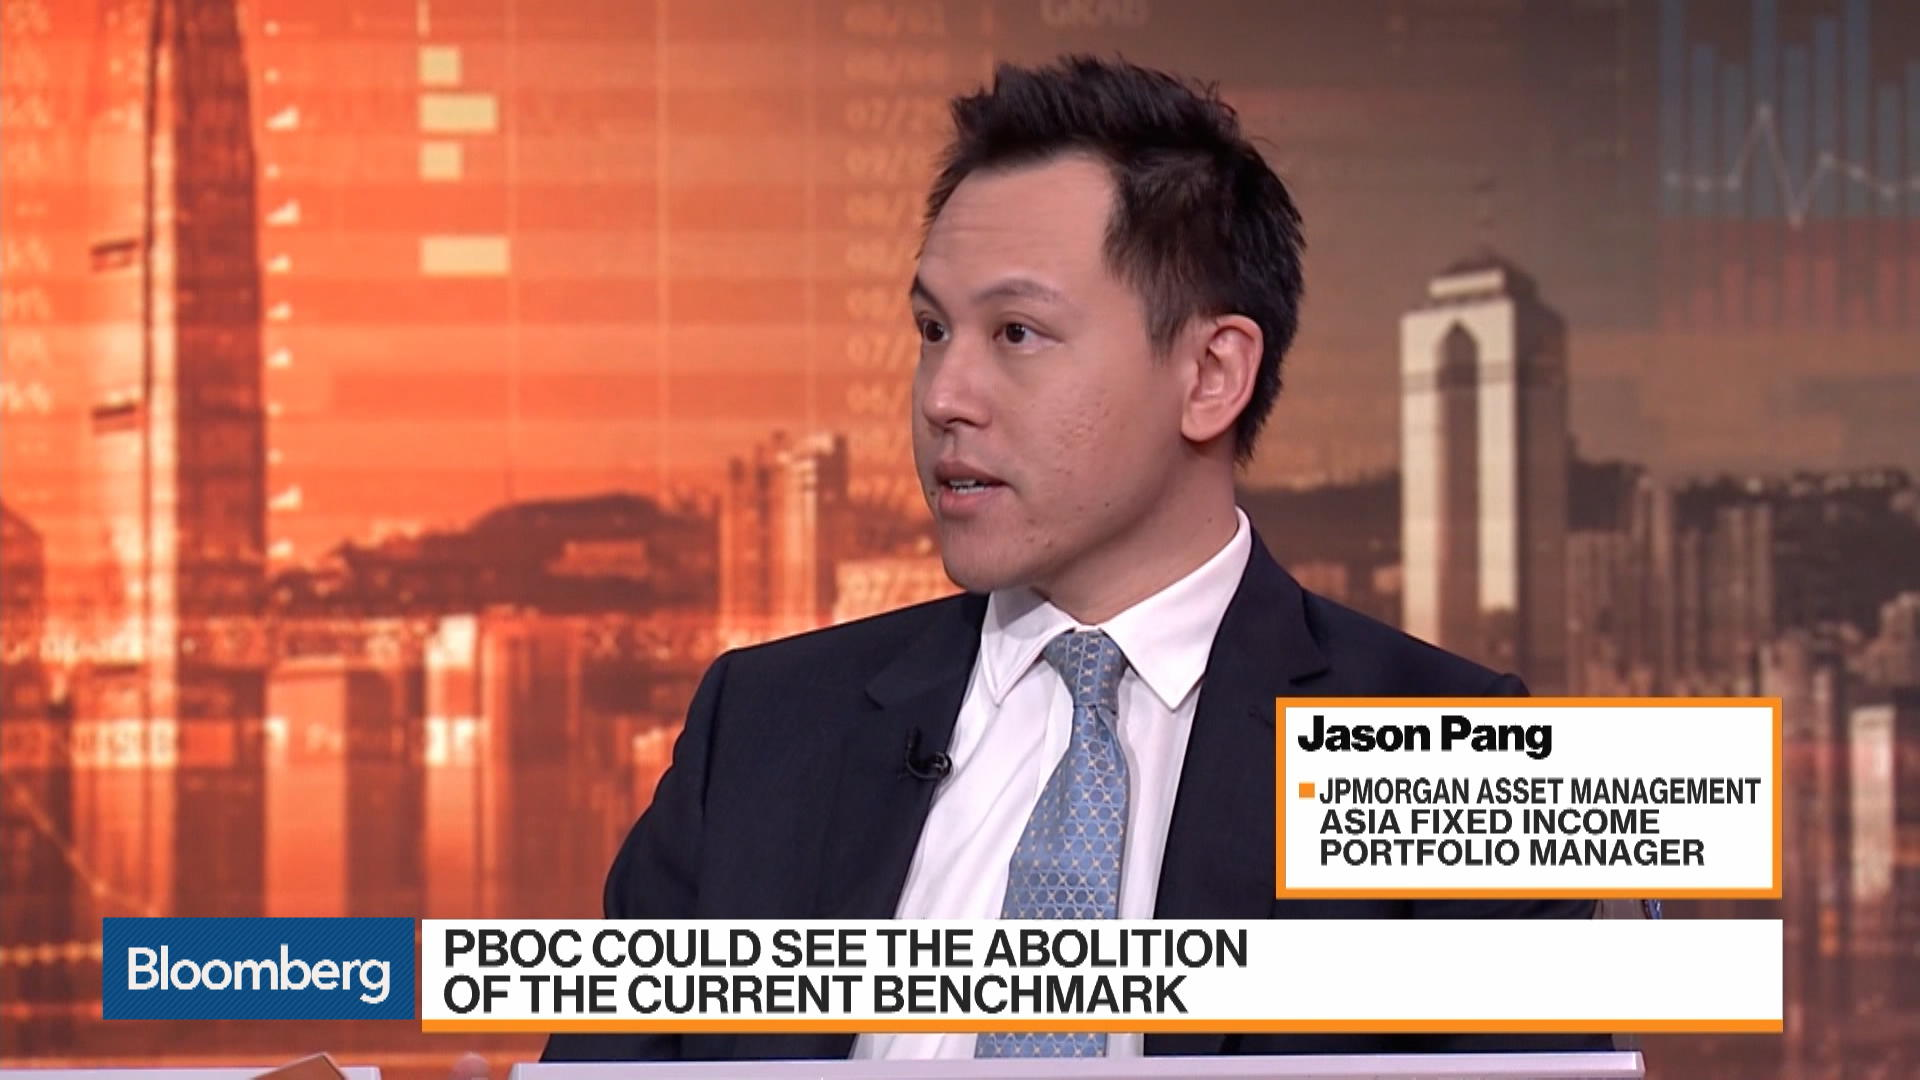 PBOC's Interest Rate Reform a Step in Right Direction, Says JPMorgan's Pang